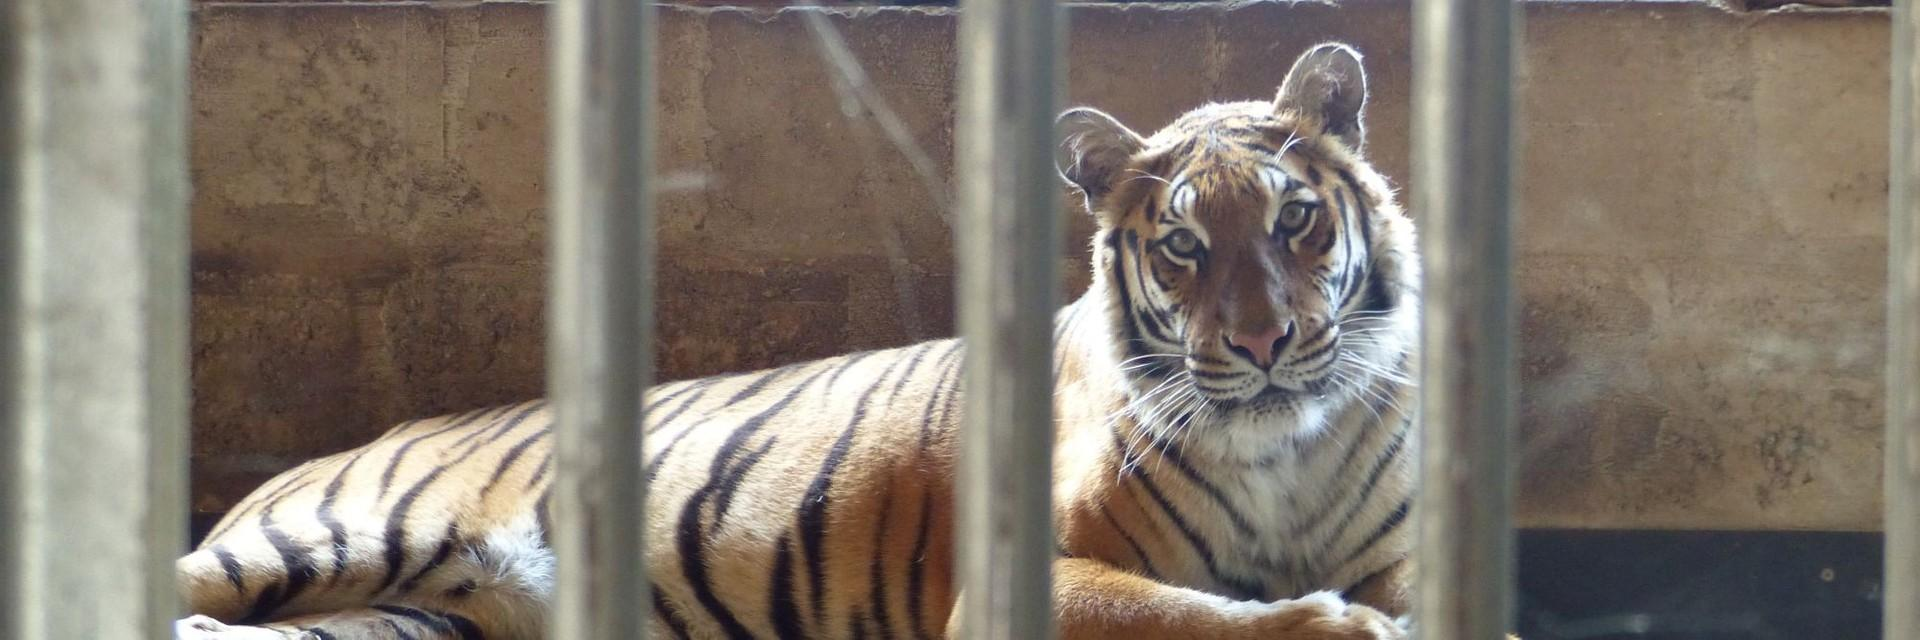 tiger in a cage on concrete floor